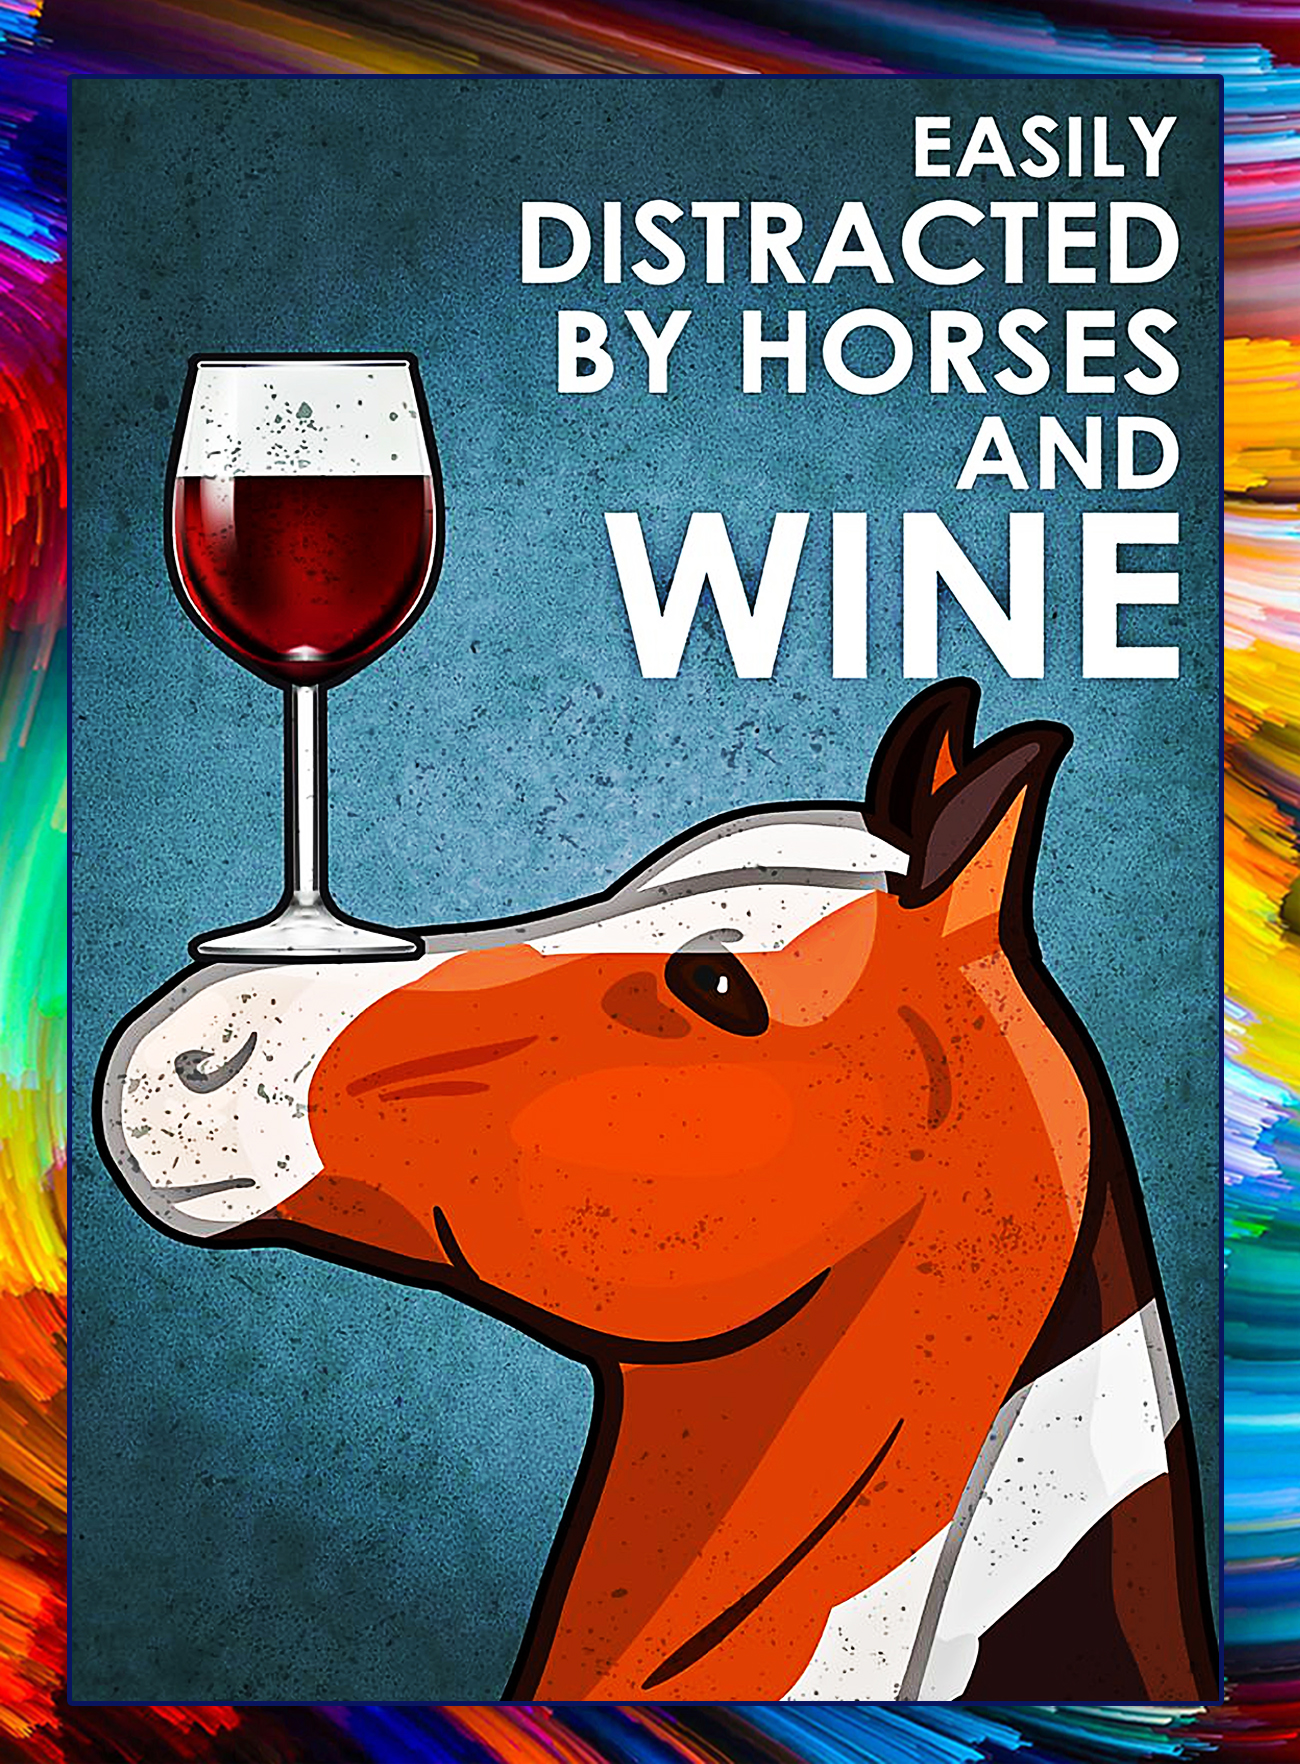 Easily distracted by horses and wine poster